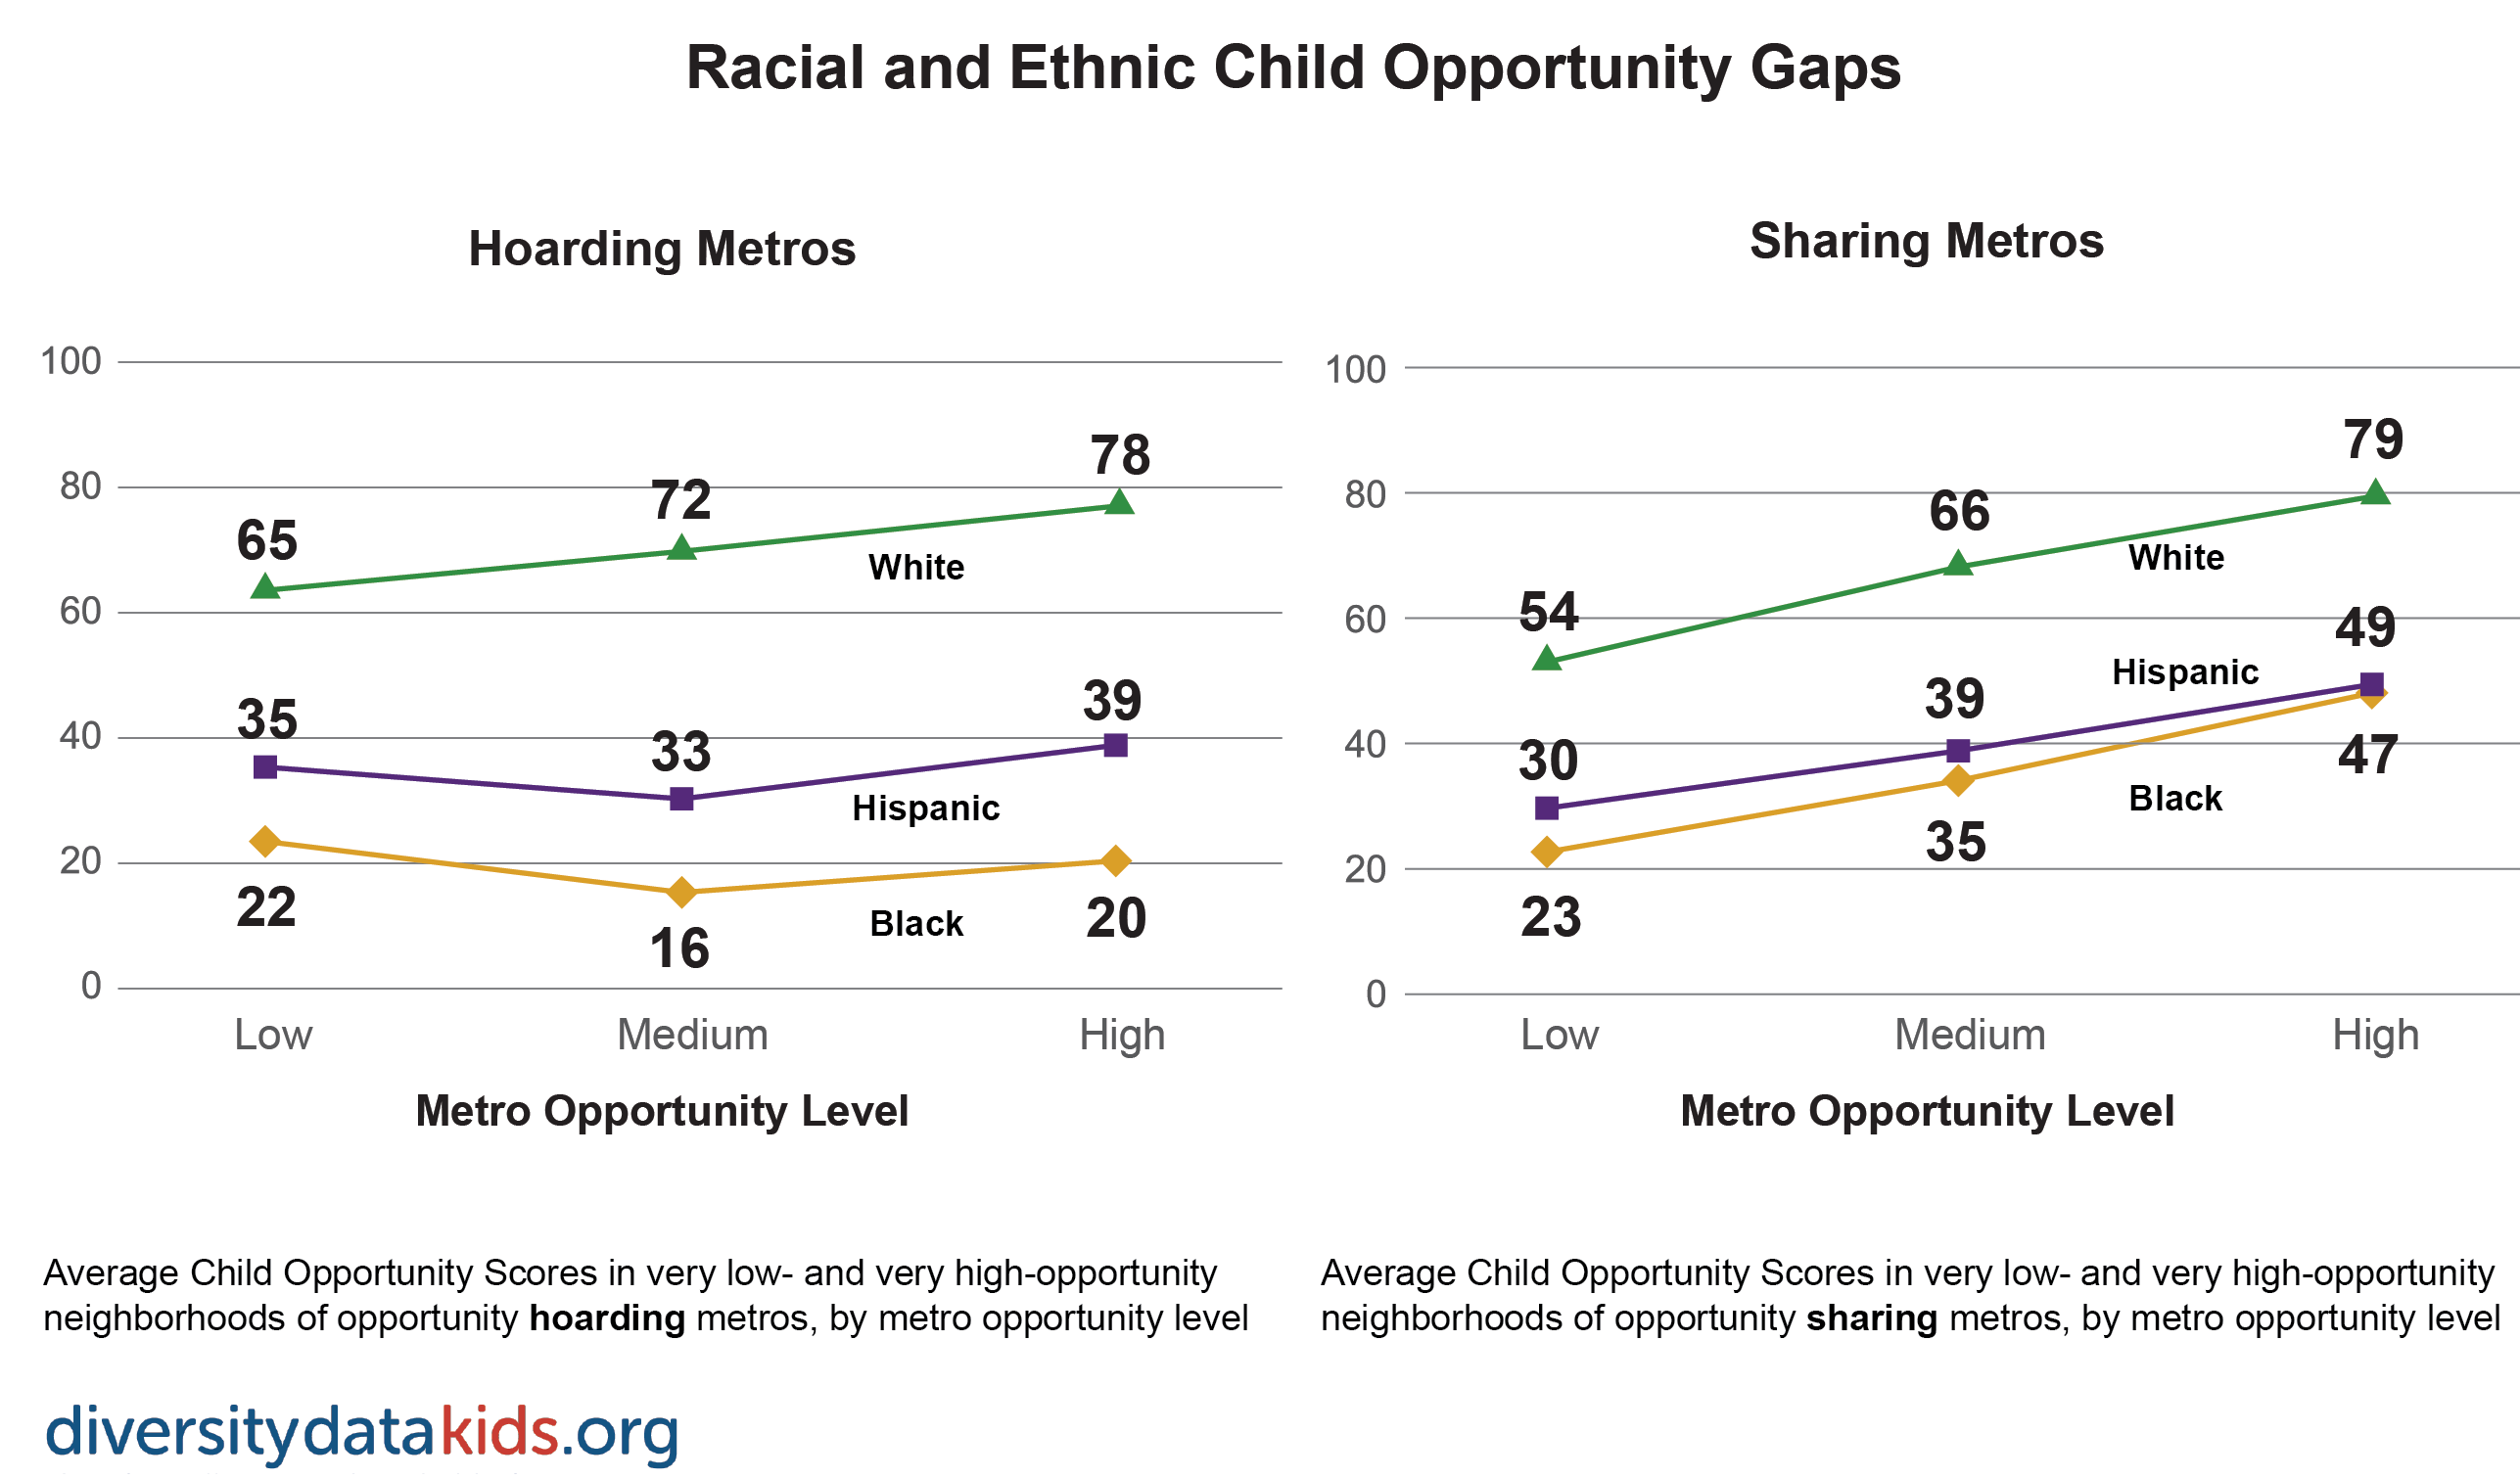 Graph showing racial-ethnic dimensions of opportunity levels in hoarding and sharing metros